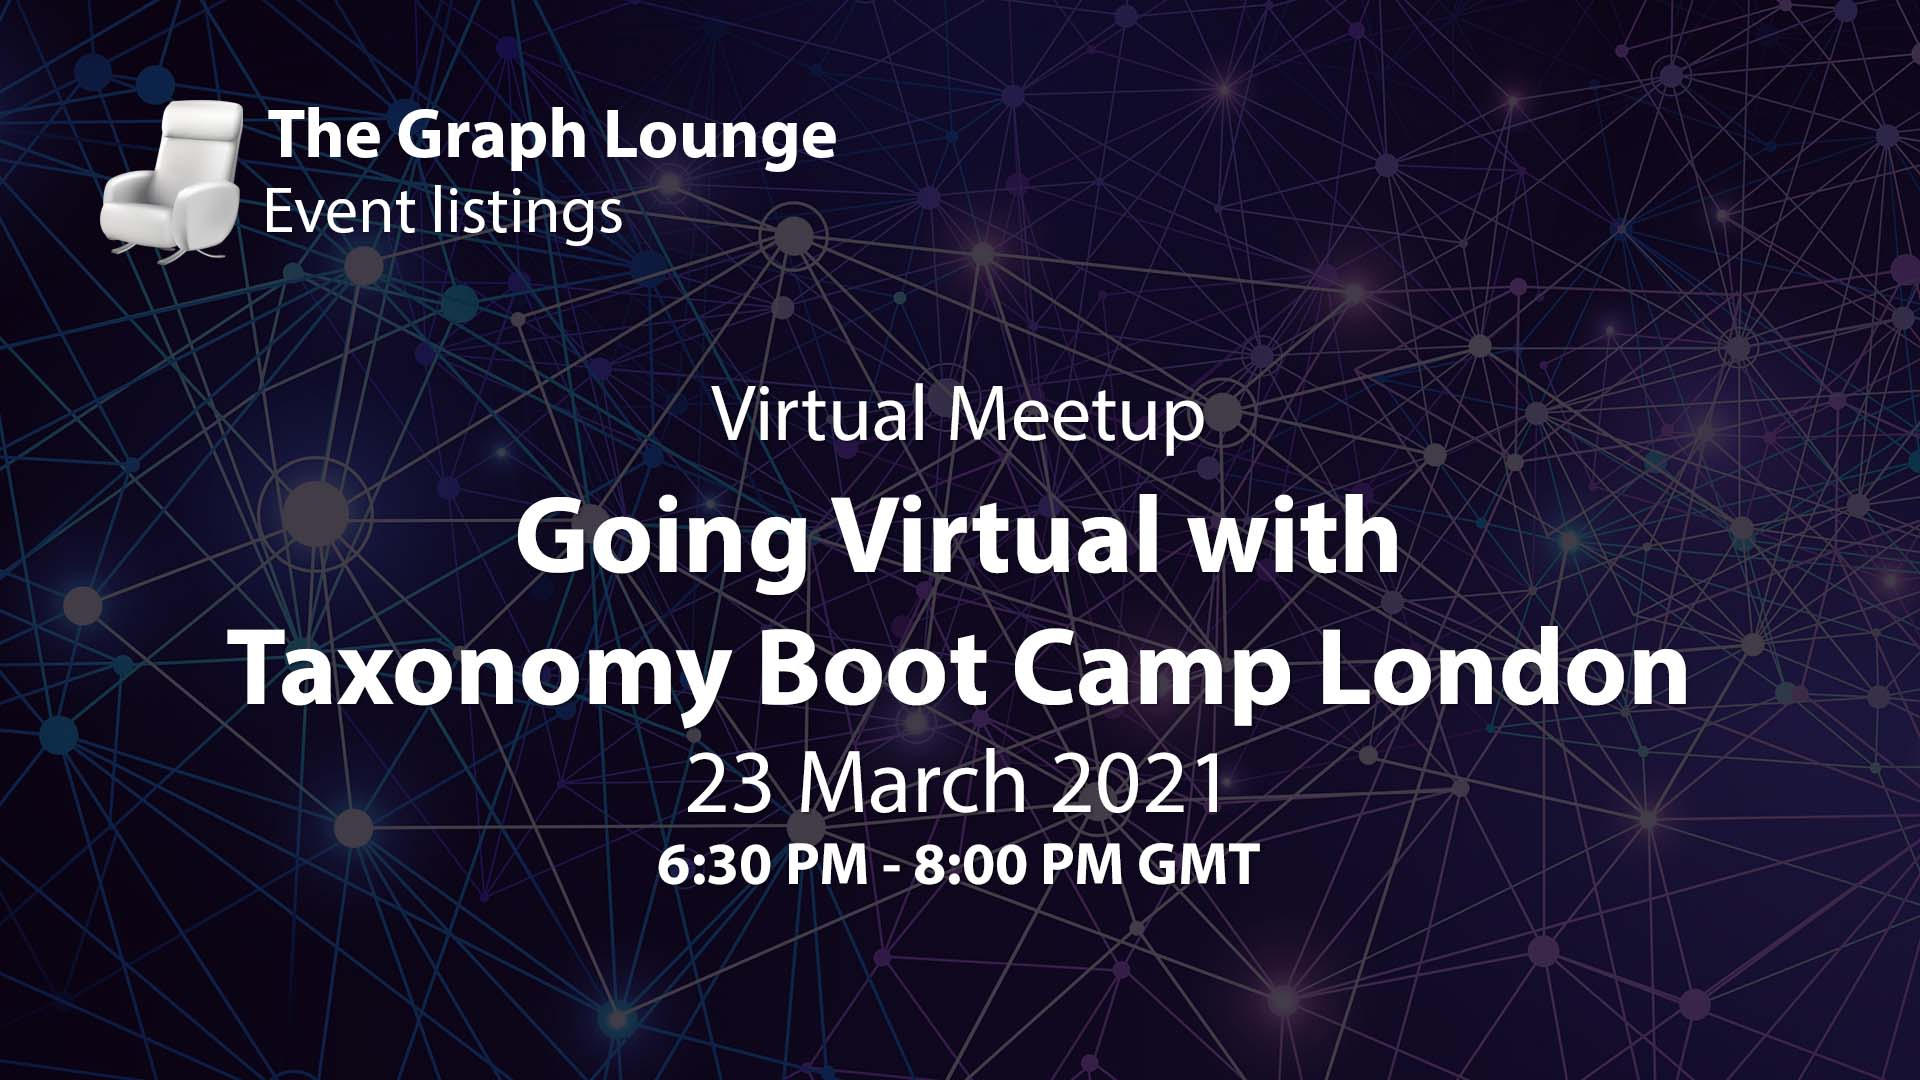 Going Virtual with Taxonomy Bootcamp London